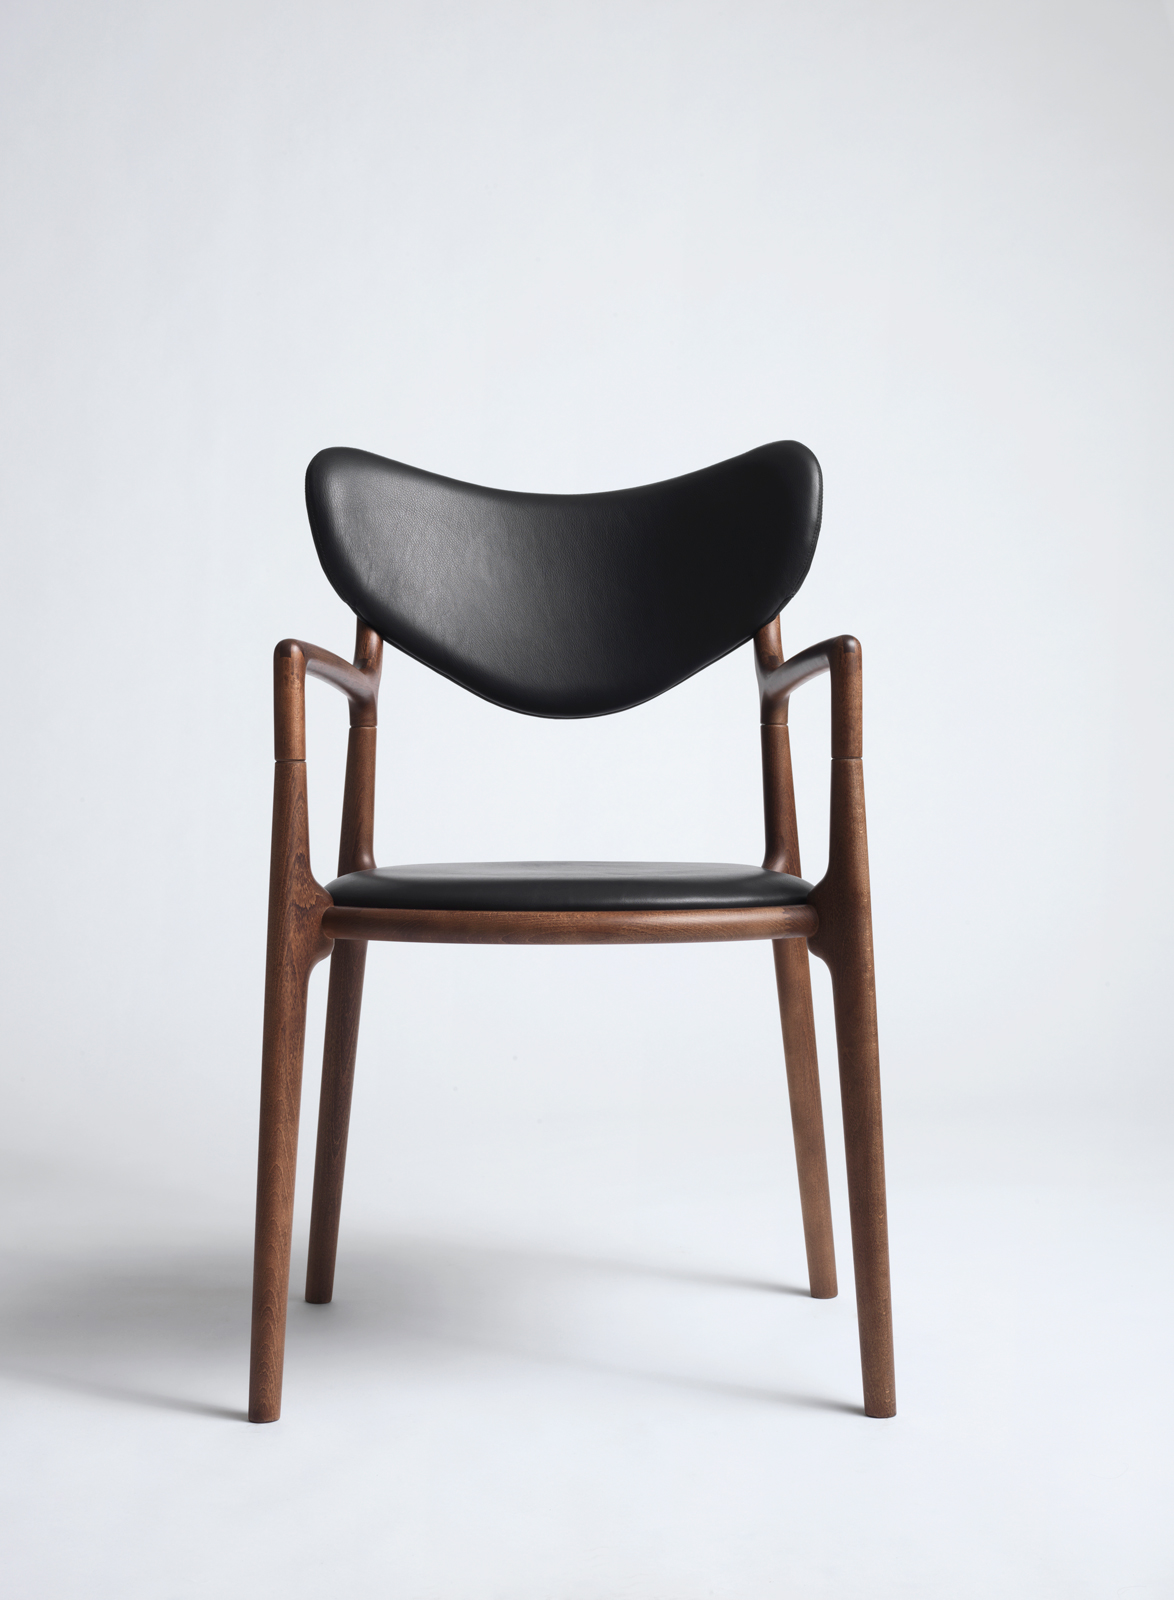 Salon_Chair_Brown_Beech_Black_Leather_Asger_Soelberg_01.jpg